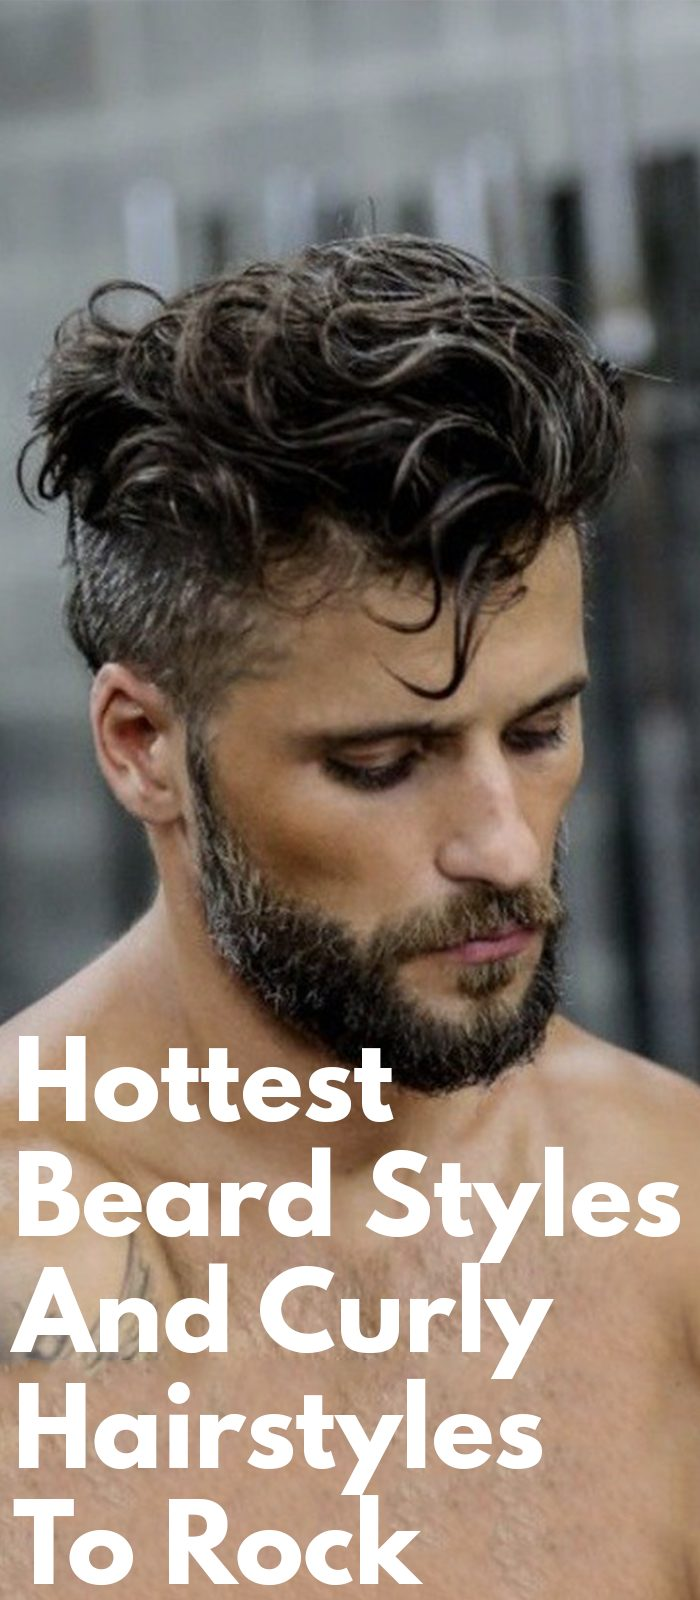 Hottest Beard Styles And Curly Hairstyles To Rock